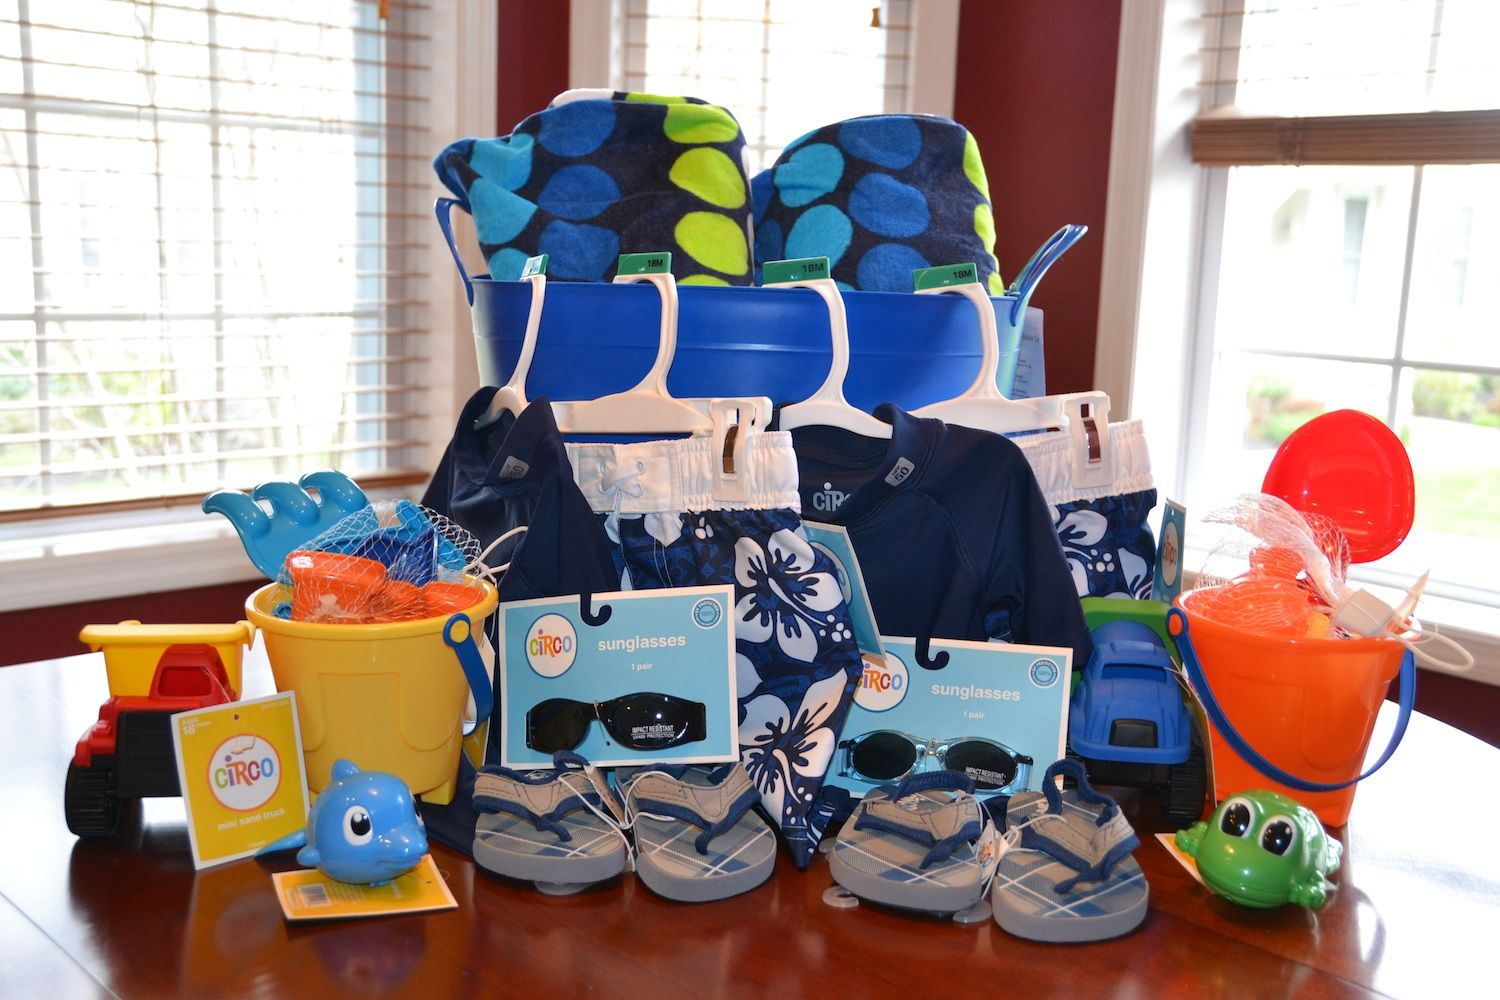 Gift baskets boy age 1 toys for 1 year olds great gifts for 1 gift baskets boy age 1 toys for 1 year olds great gifts for 1 negle Image collections